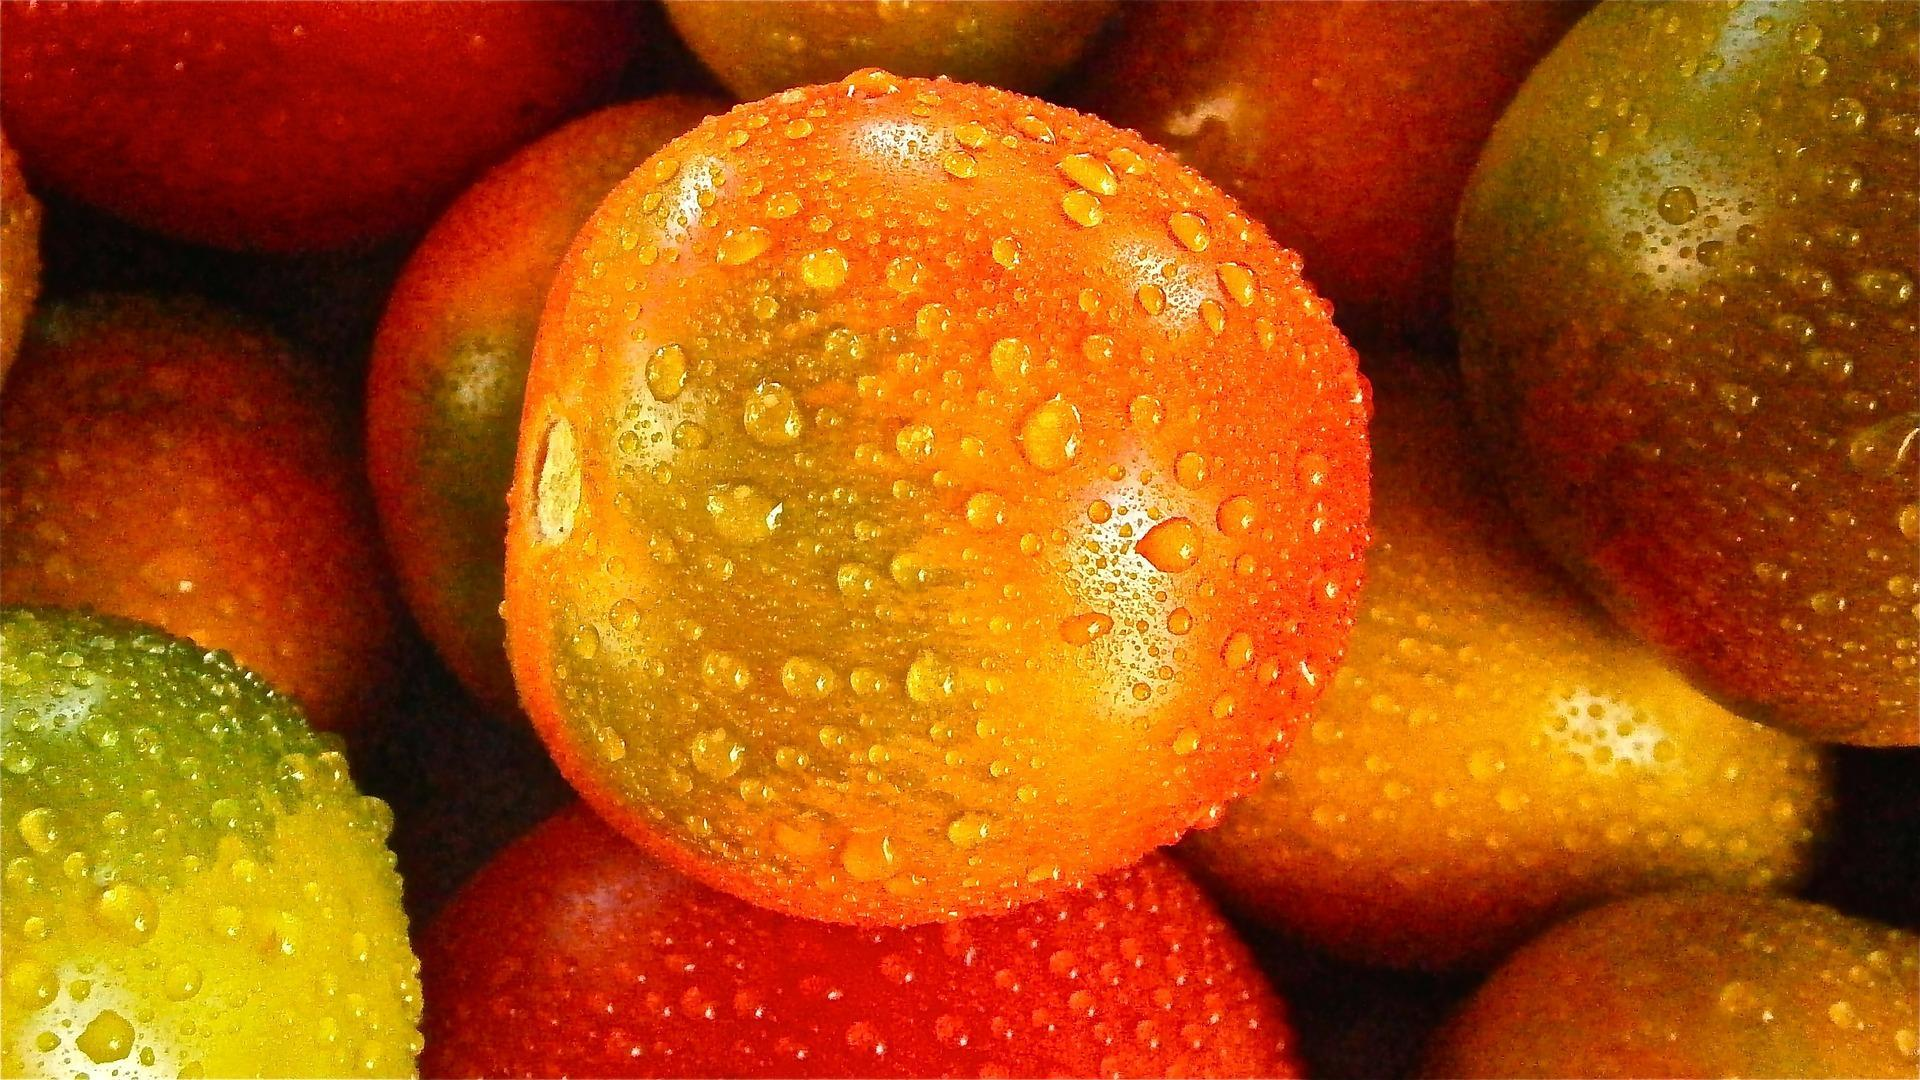 Many tomatoes - sprinkled with dew drops